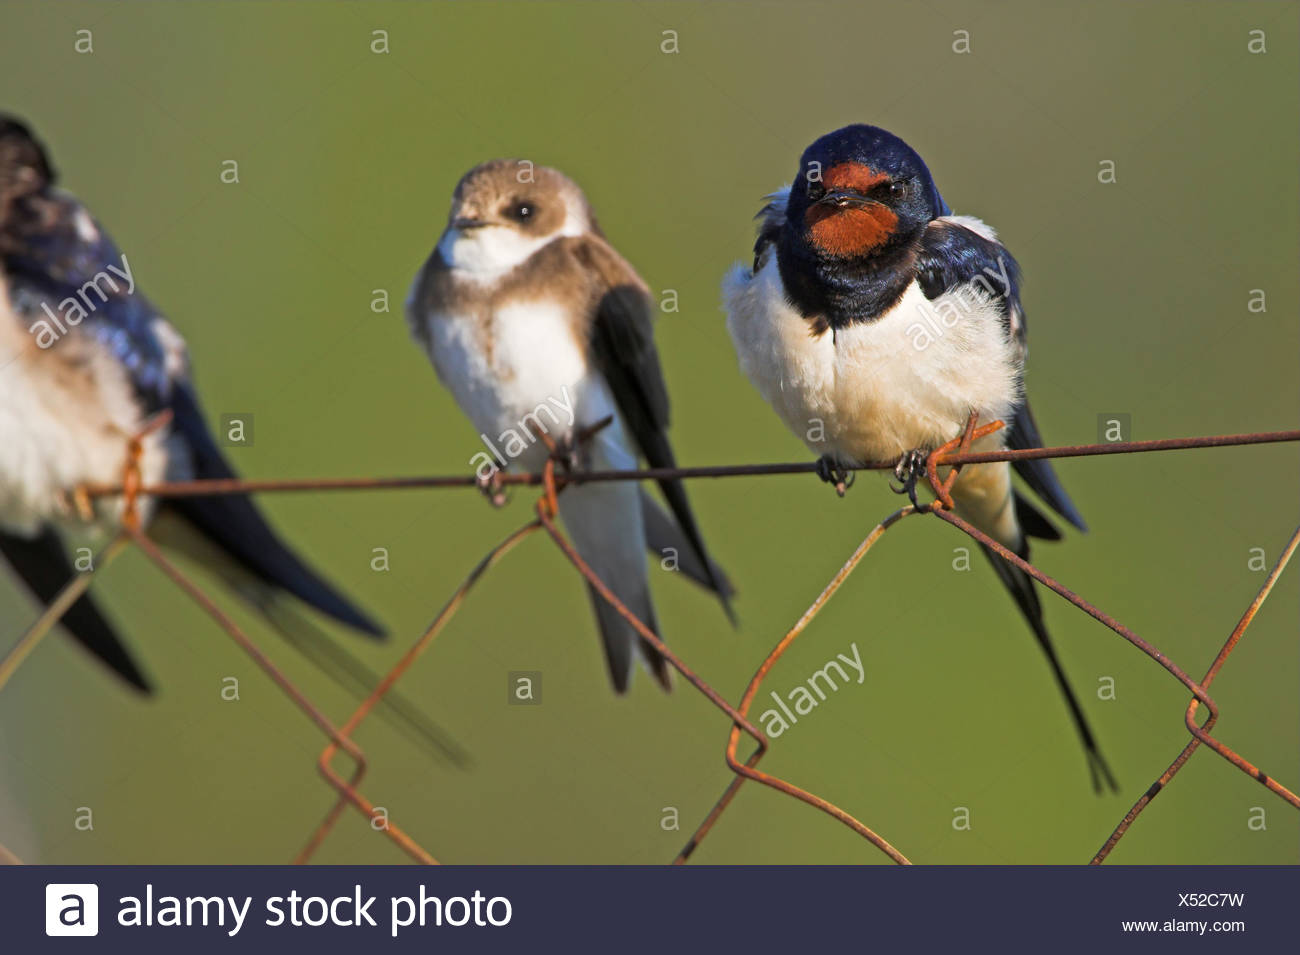 barn swallow (Hirundo rustica), some birds sitting beside each other on a mesh wire fence, Greece, Lesbos, Kalloni Salt Pans - Stock Image